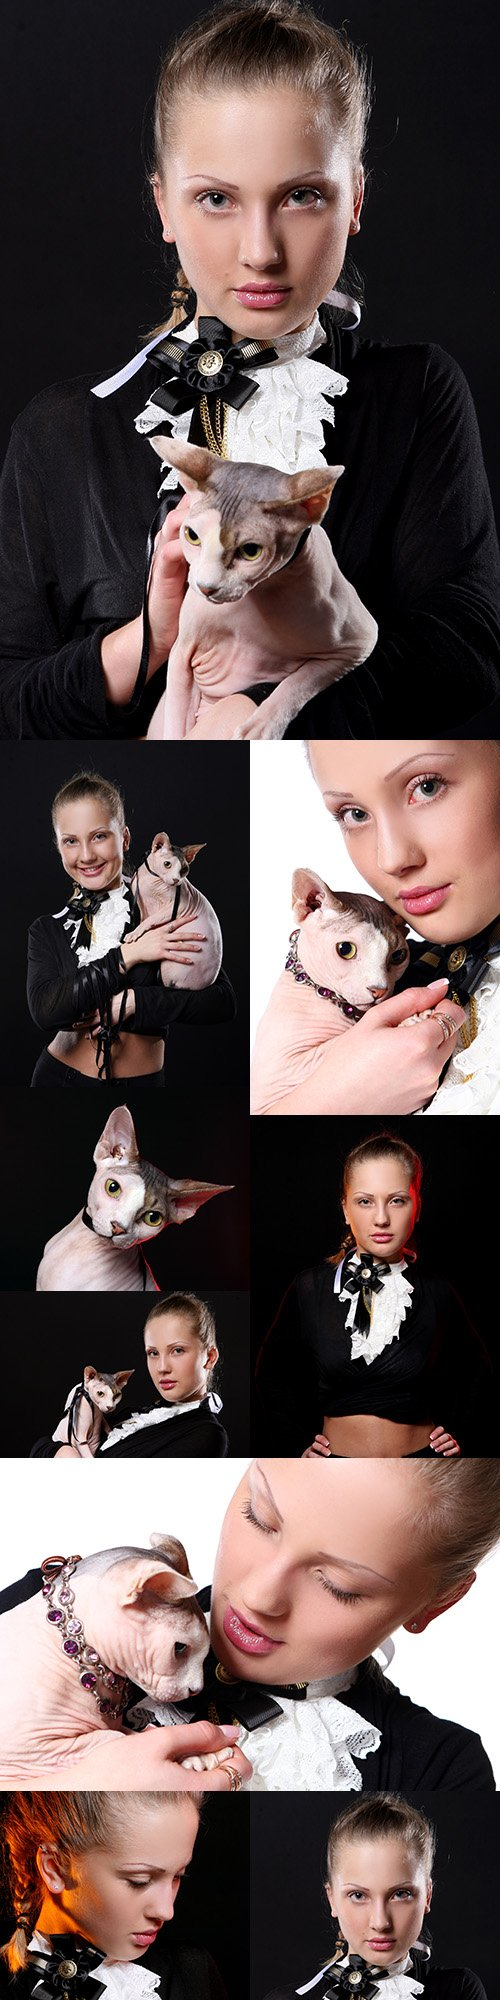 Attractive young girl with cat on her hands